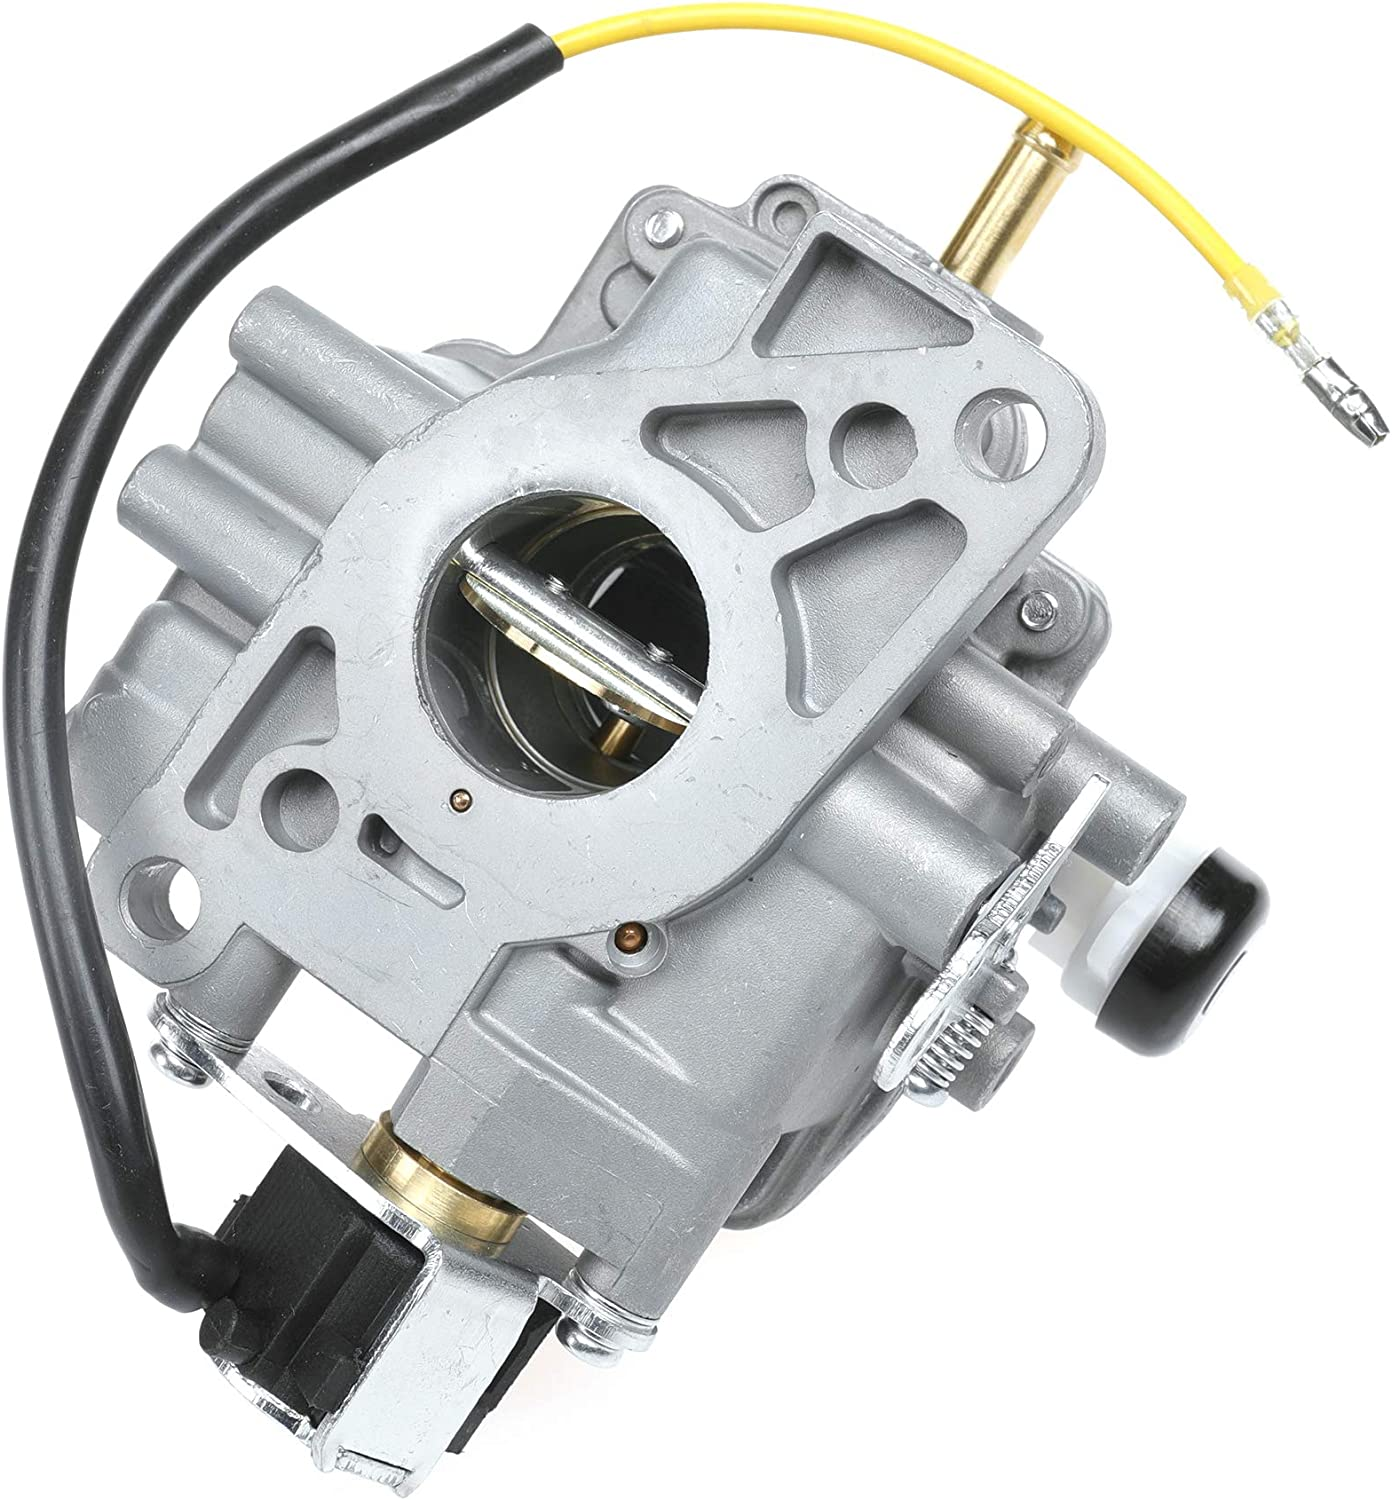 24 853 32S 24 853 32S Carburetor with Gasket Replacement for Kohler CH18 23 CH620 640 Engine Model